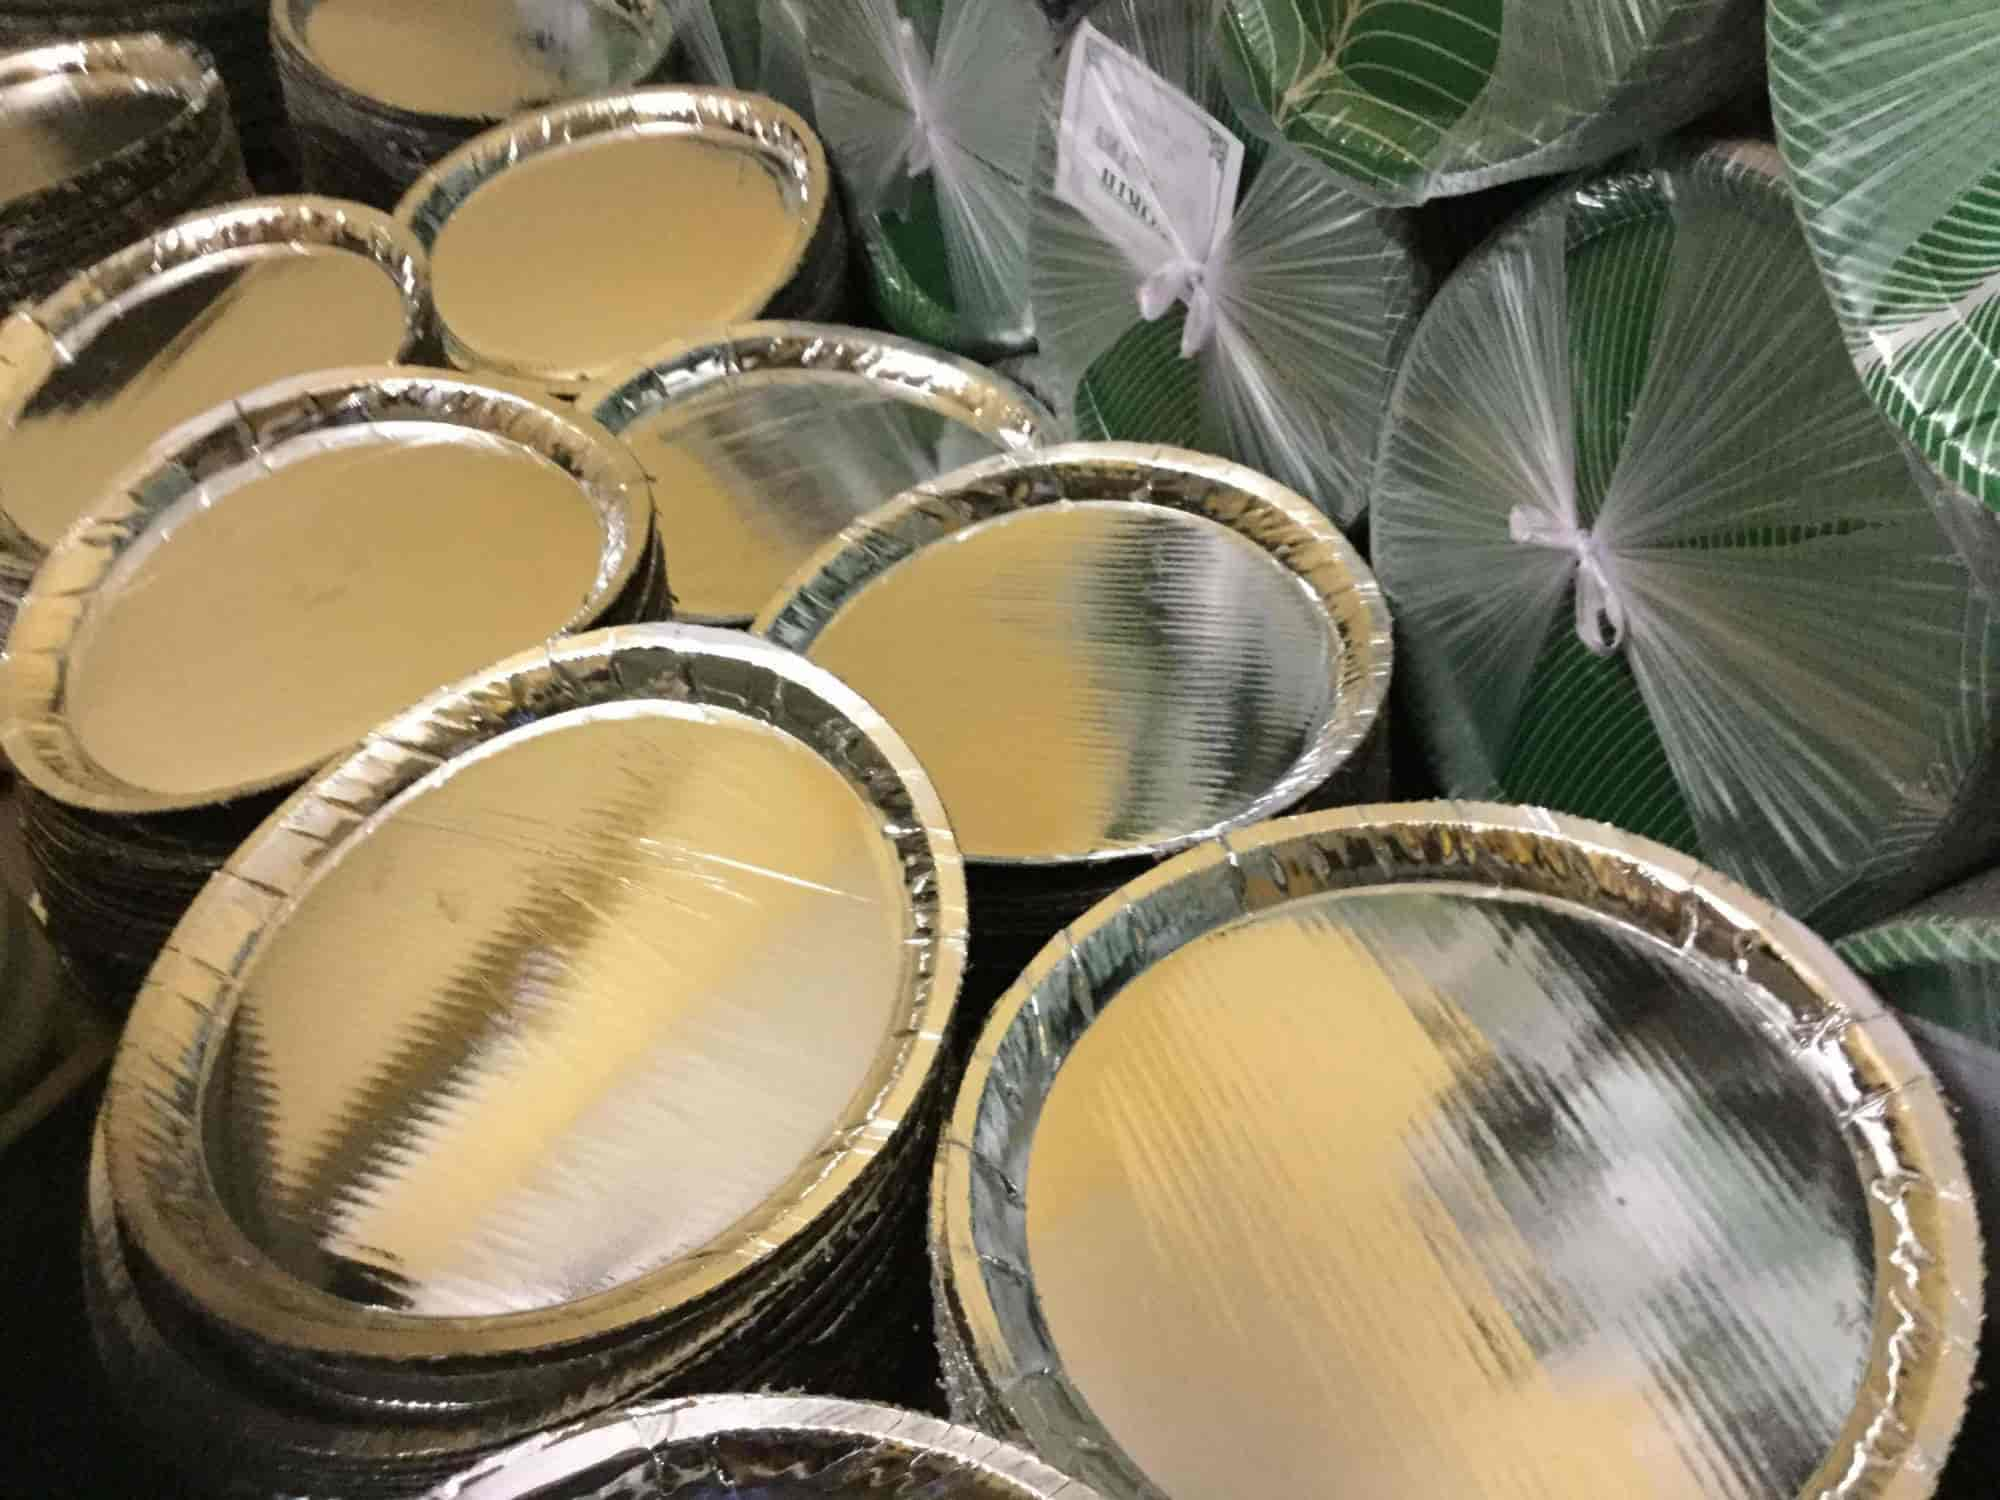 Worth Industry Dargamitta - Paper Plate Manufacturers in Nellore - Justdial & Worth Industry Dargamitta - Paper Plate Manufacturers in Nellore ...